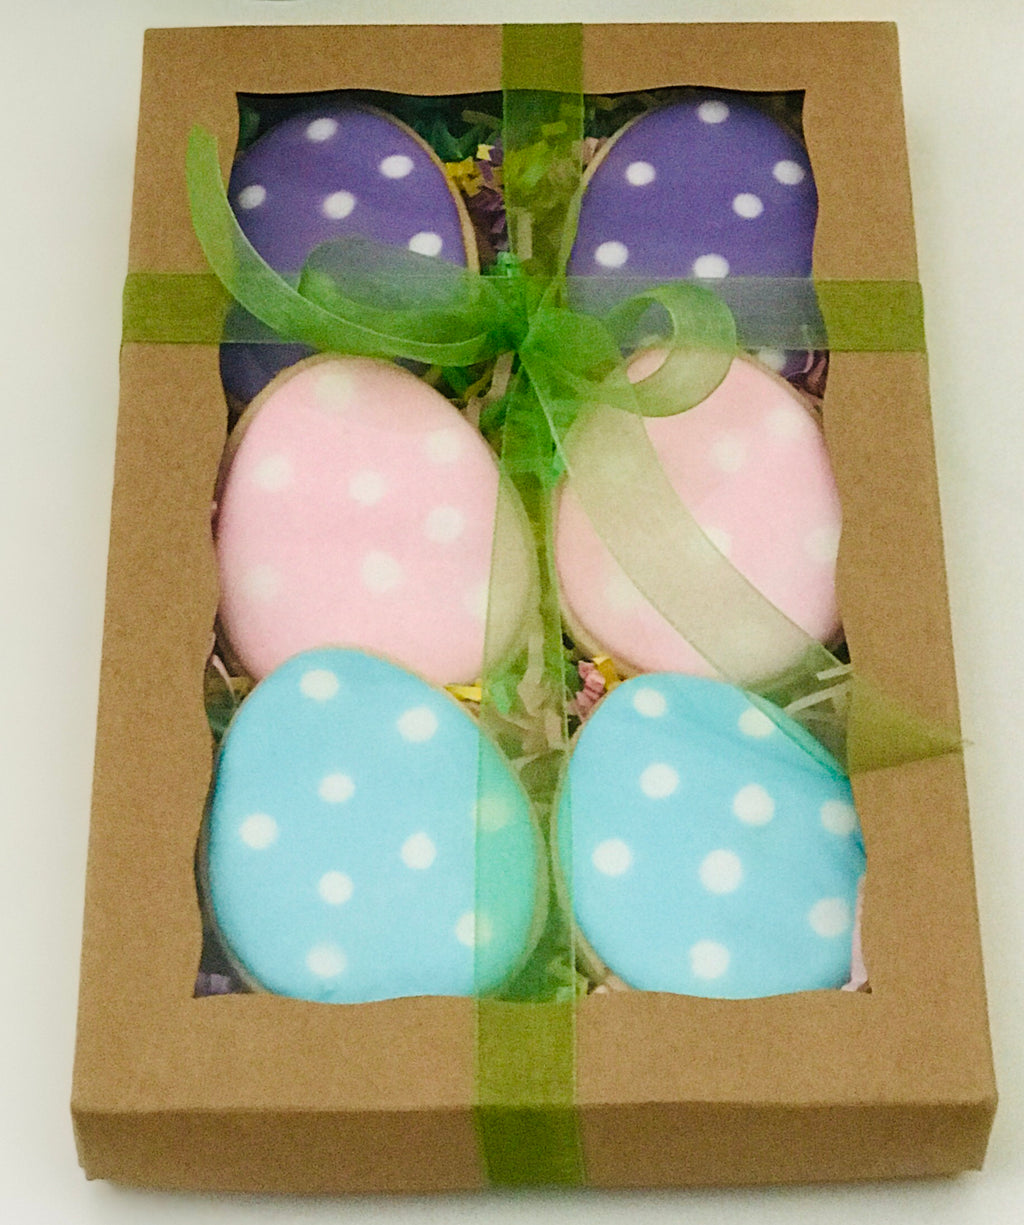 EASTER EGG COOKIE BOX - Small